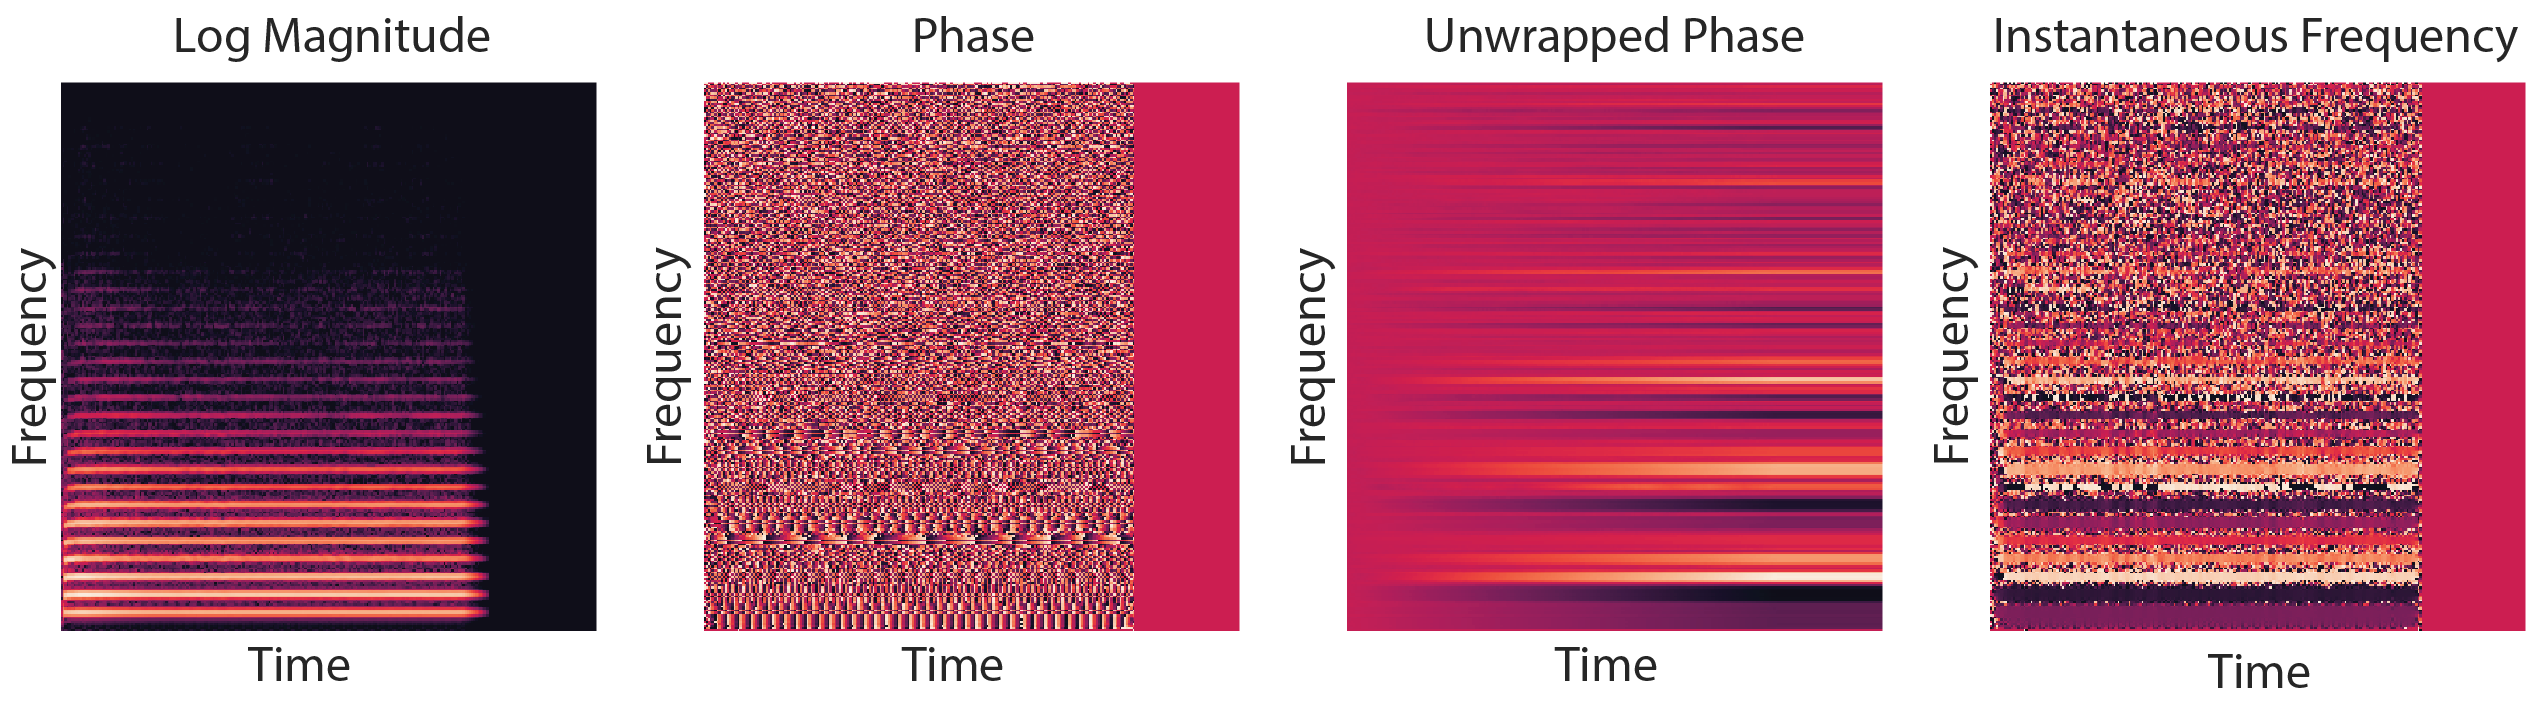 Visualisations of the magnitude, phase, unwrapped phase and instantaneous frequency spectra of a real recording of a note.